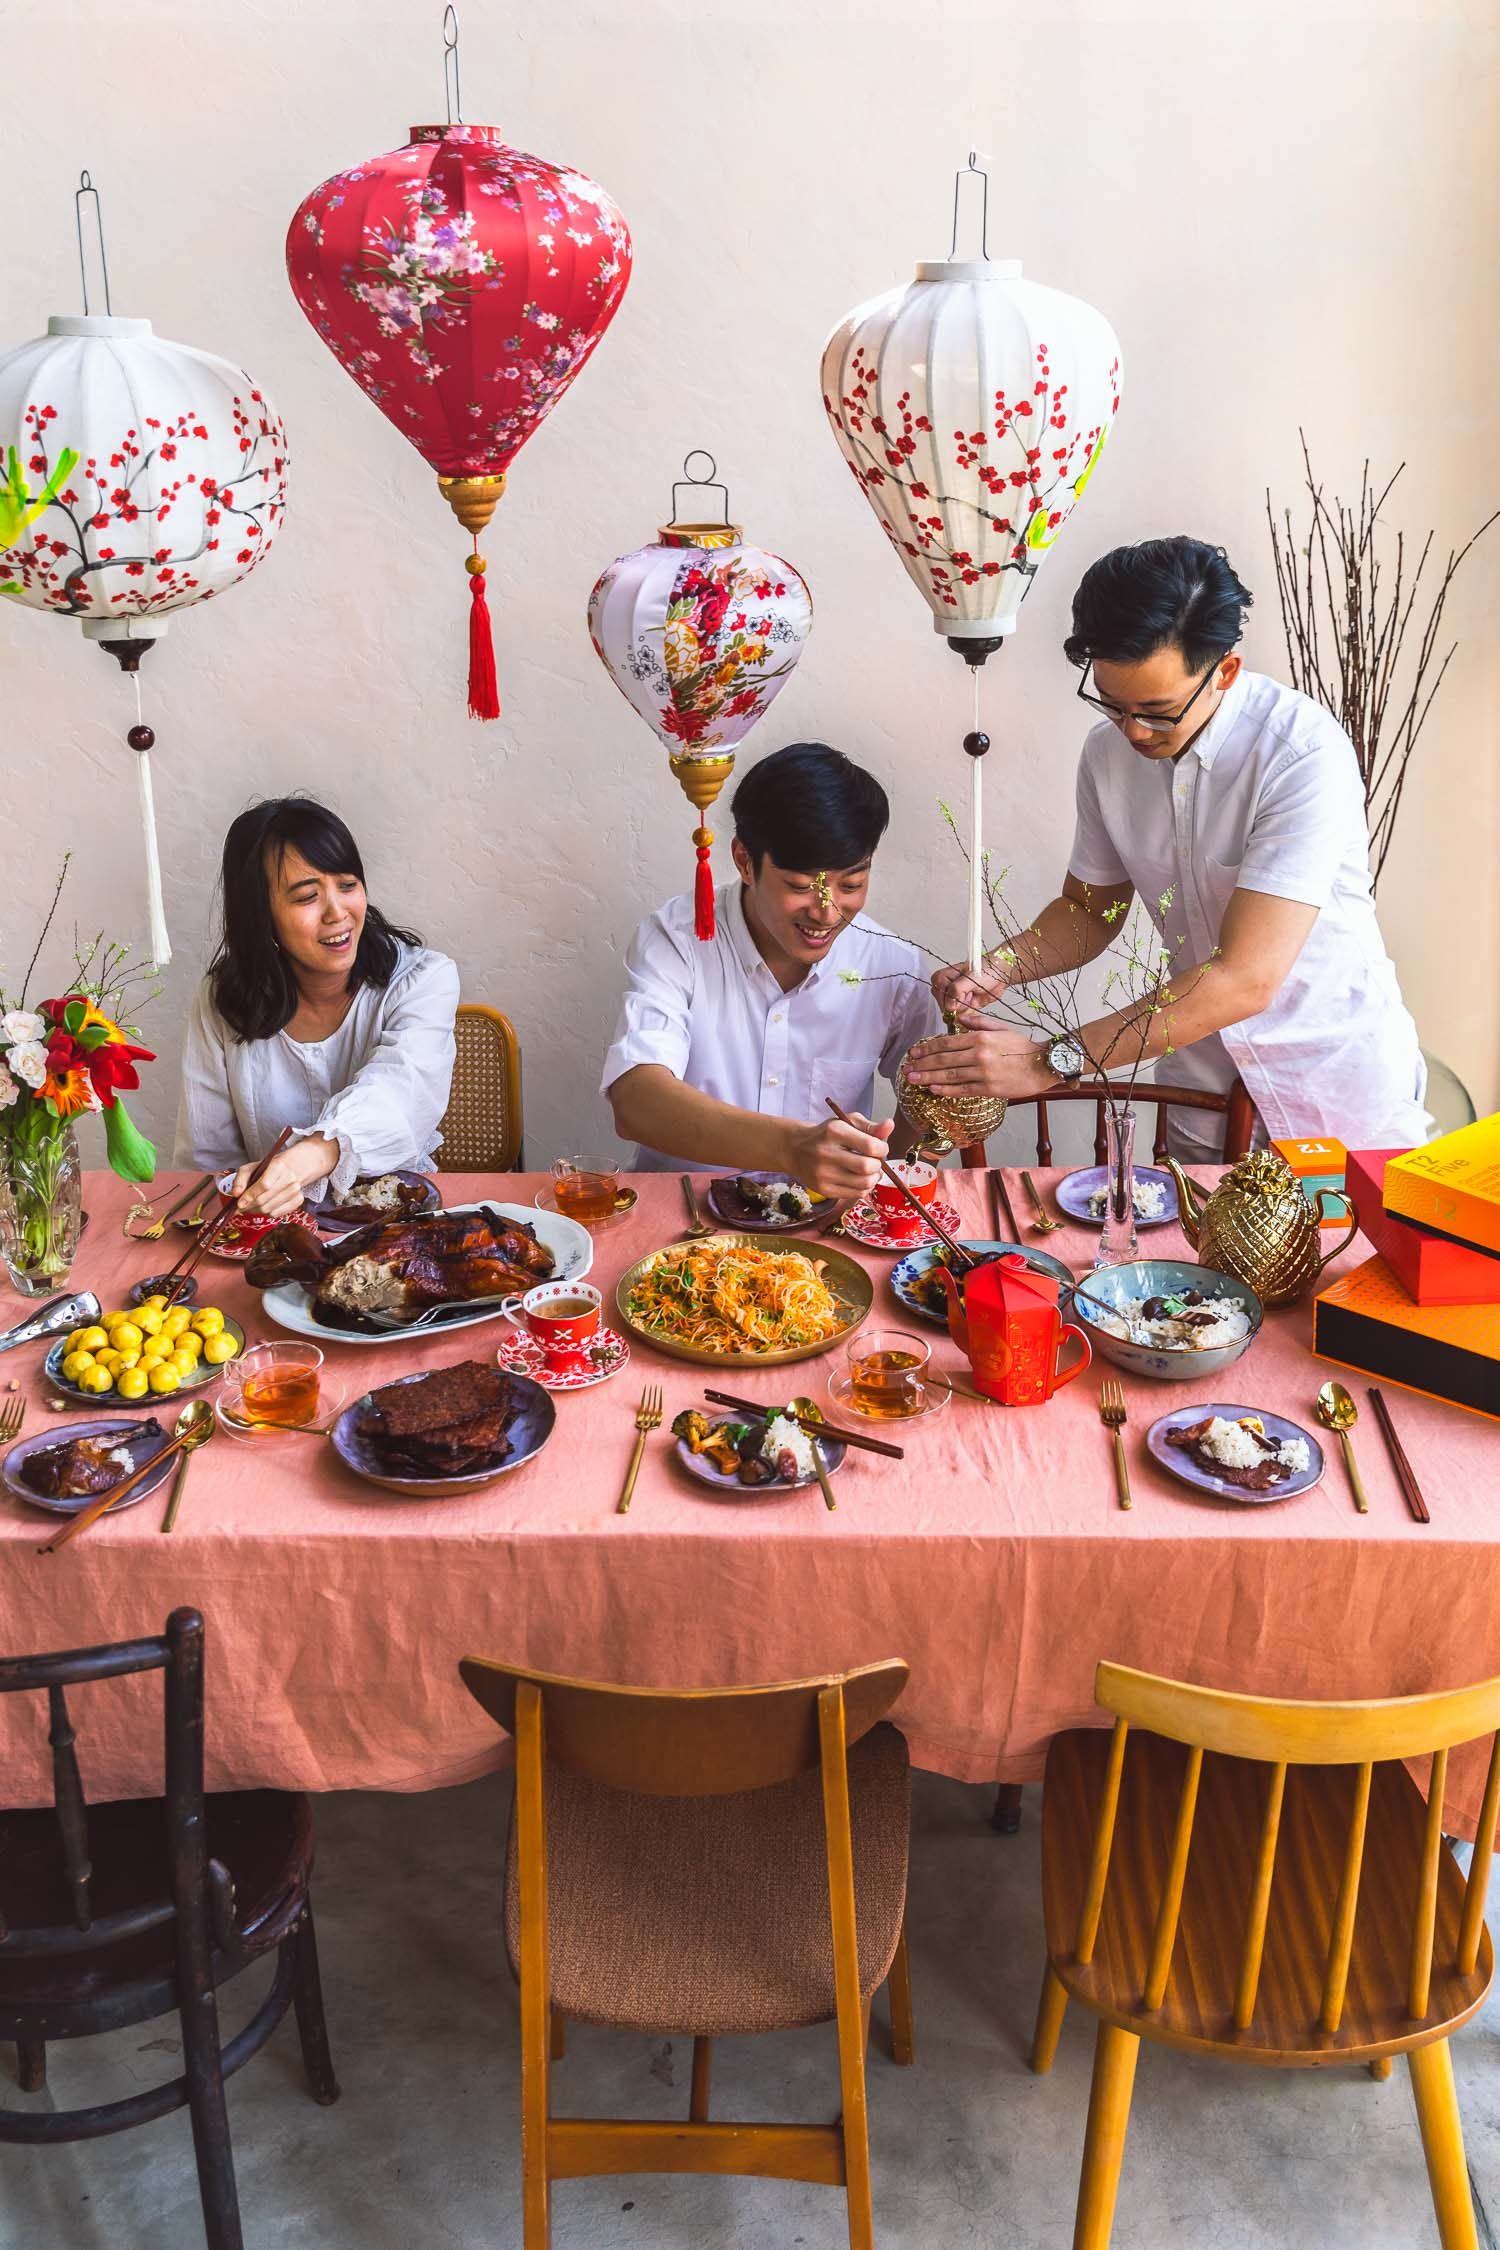 Chinese New Year 2019: T2 x Food pairing